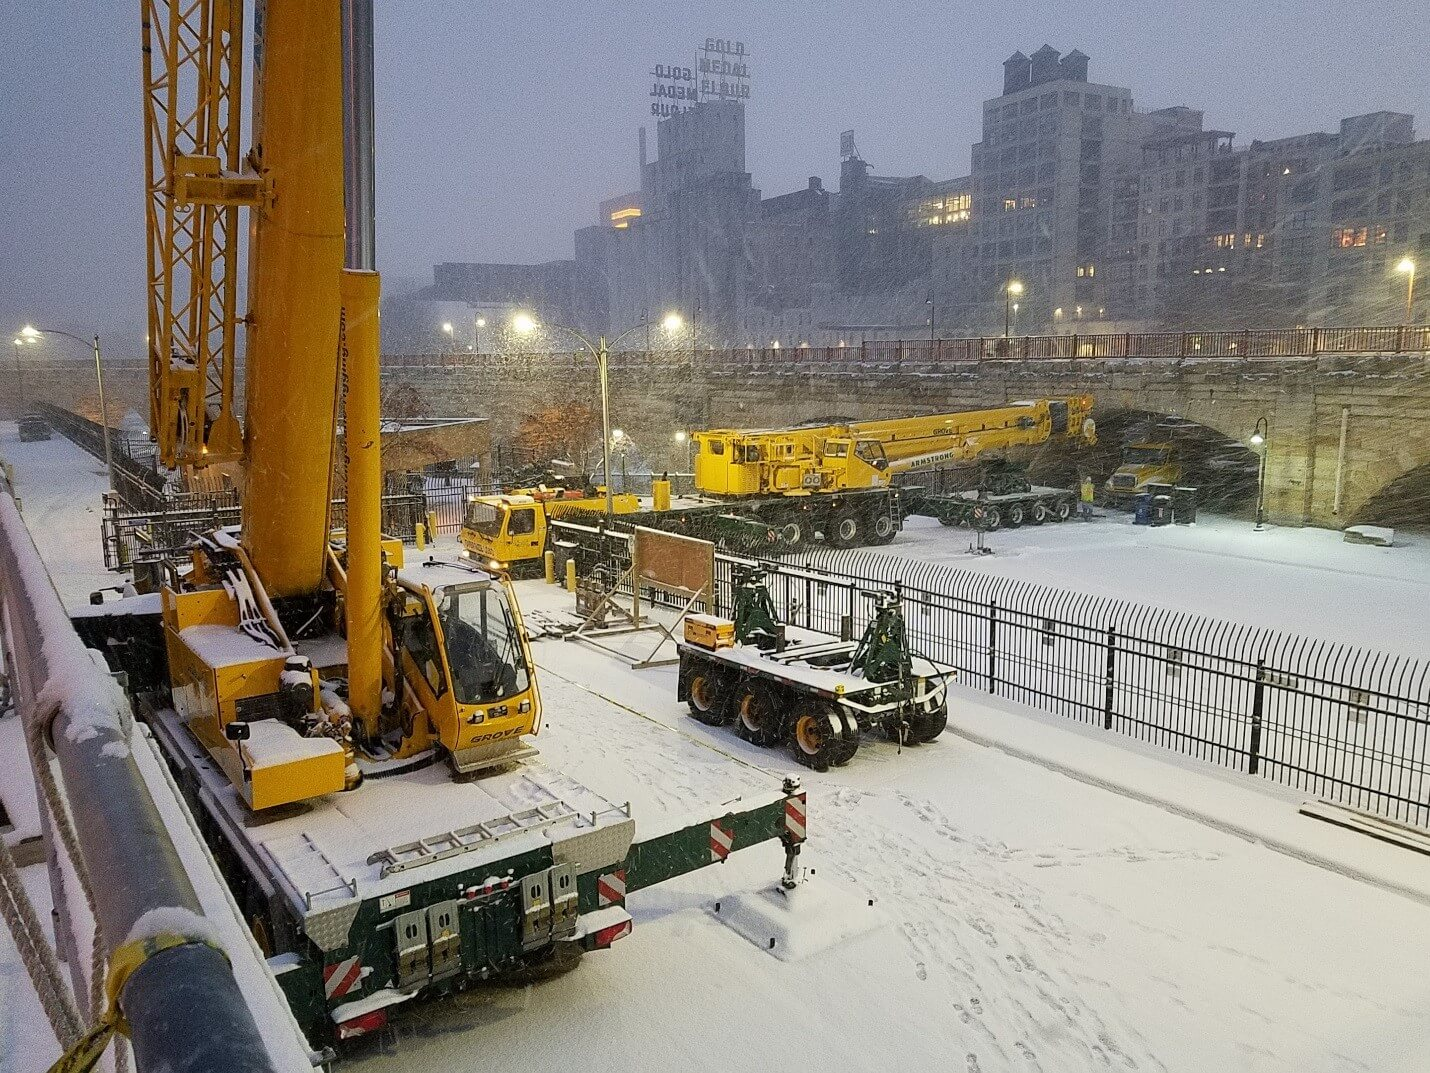 Crane in Snow at Upper St. Anthony Falls Lock and Dam